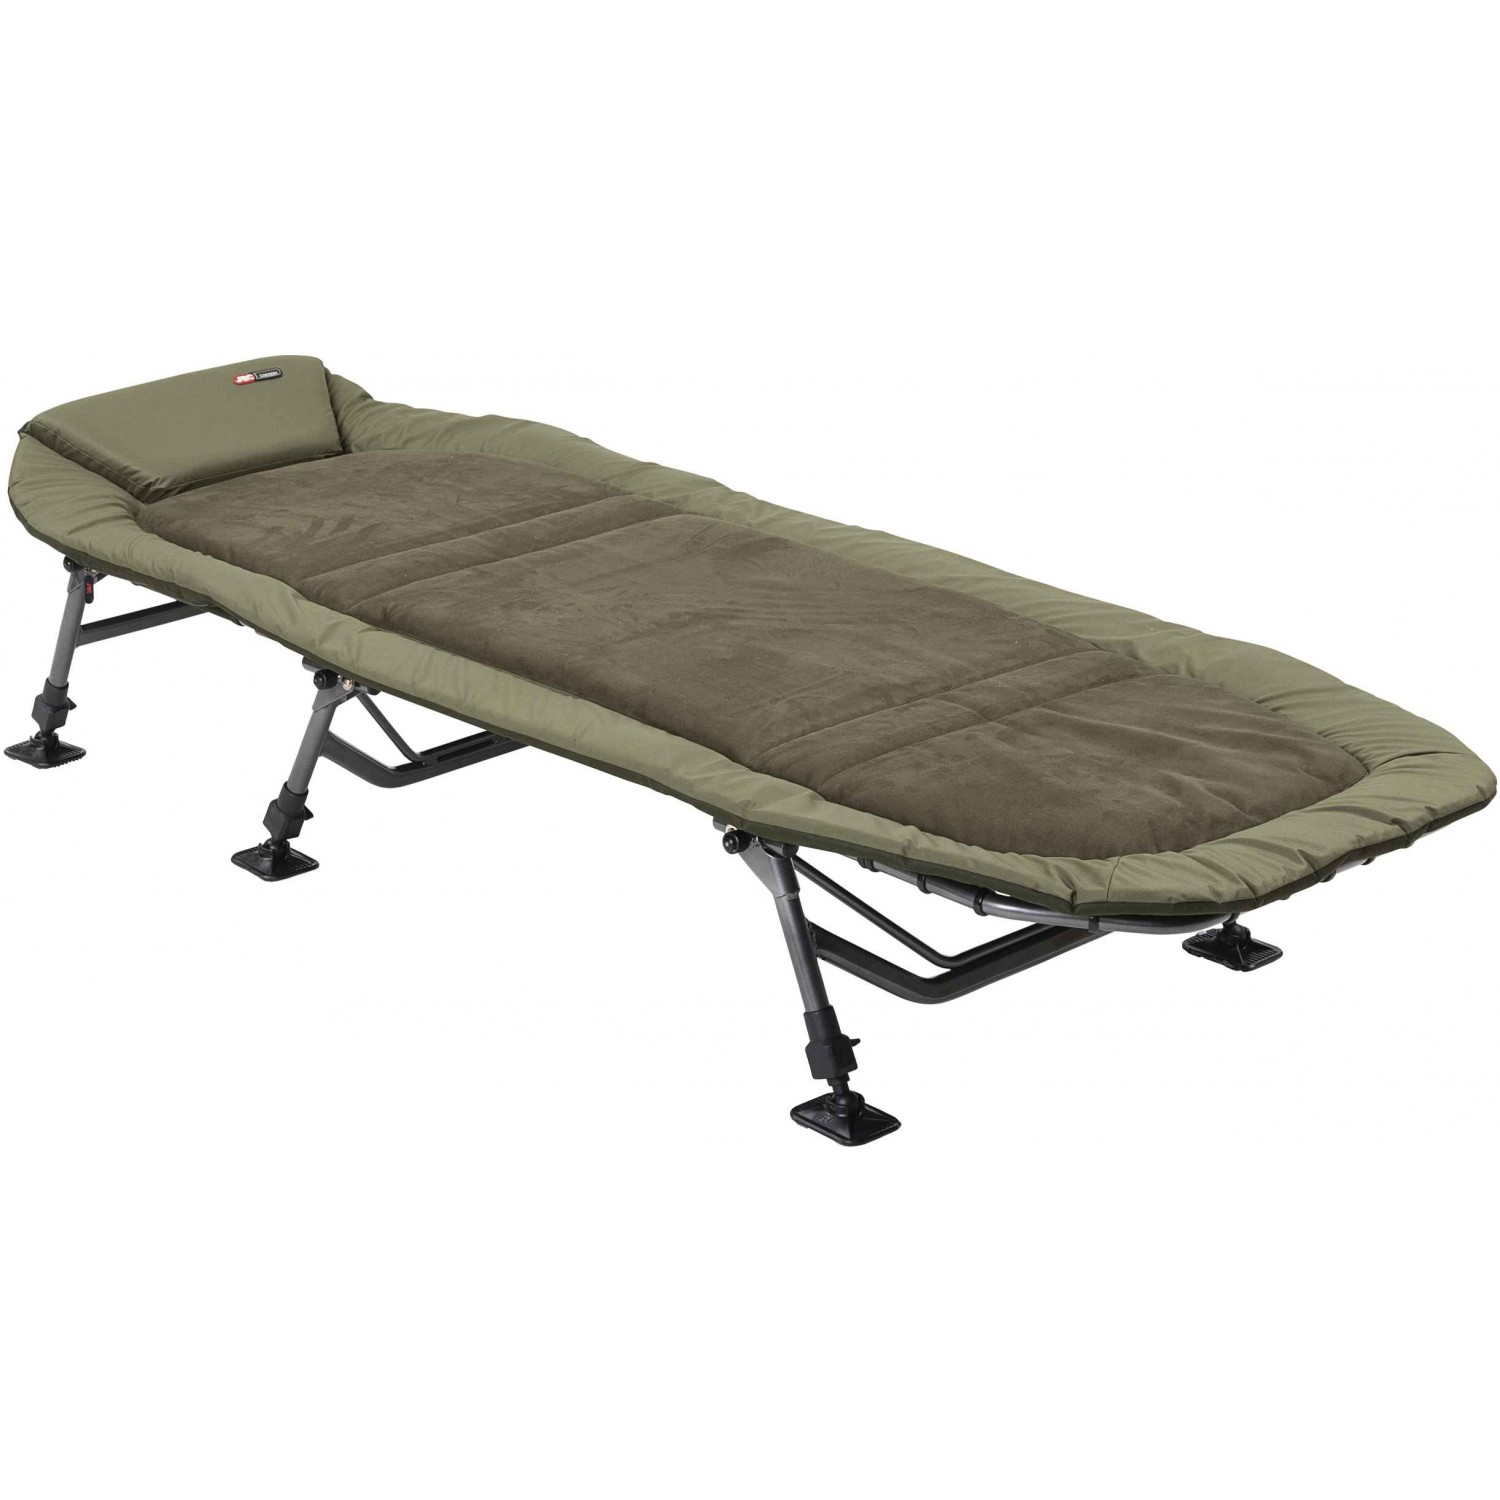 Jrc Cocoon Levelbed Compact